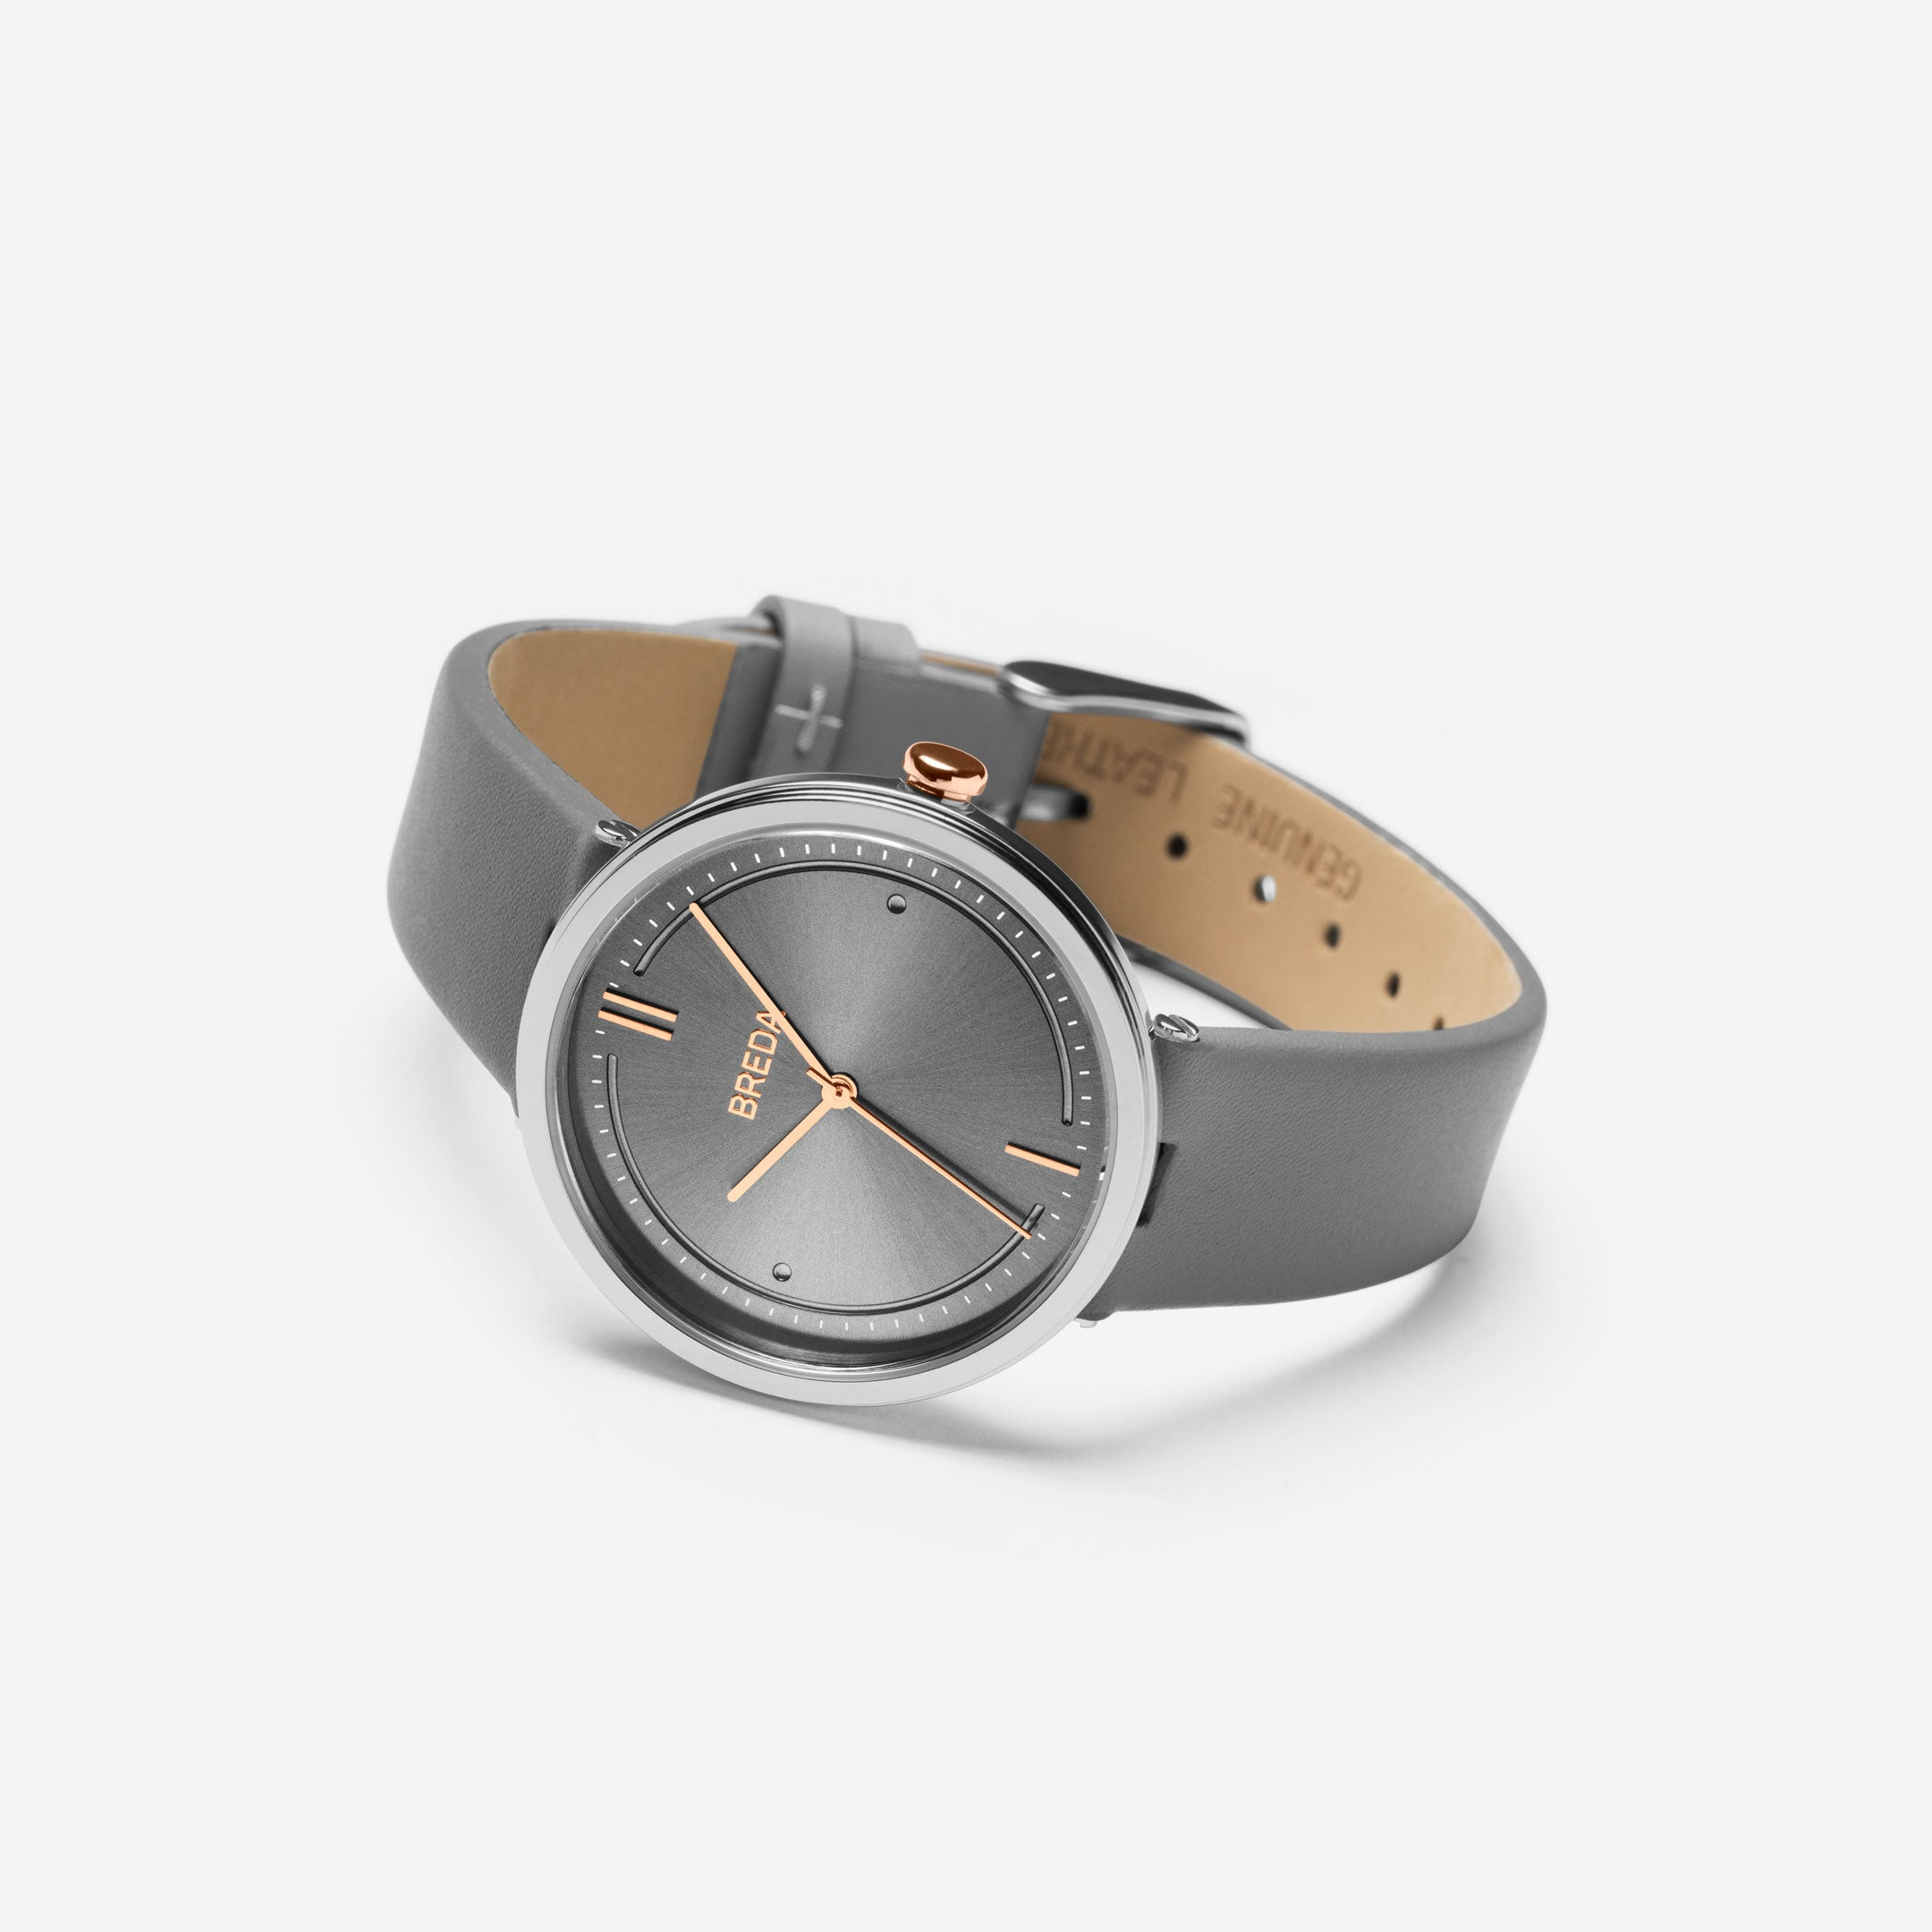 //cdn.shopify.com/s/files/1/0879/6650/products/breda-agnes-1733c-silver-rosegold-gray-leather-watch-angle_1024x1024.jpg?v=1517955416